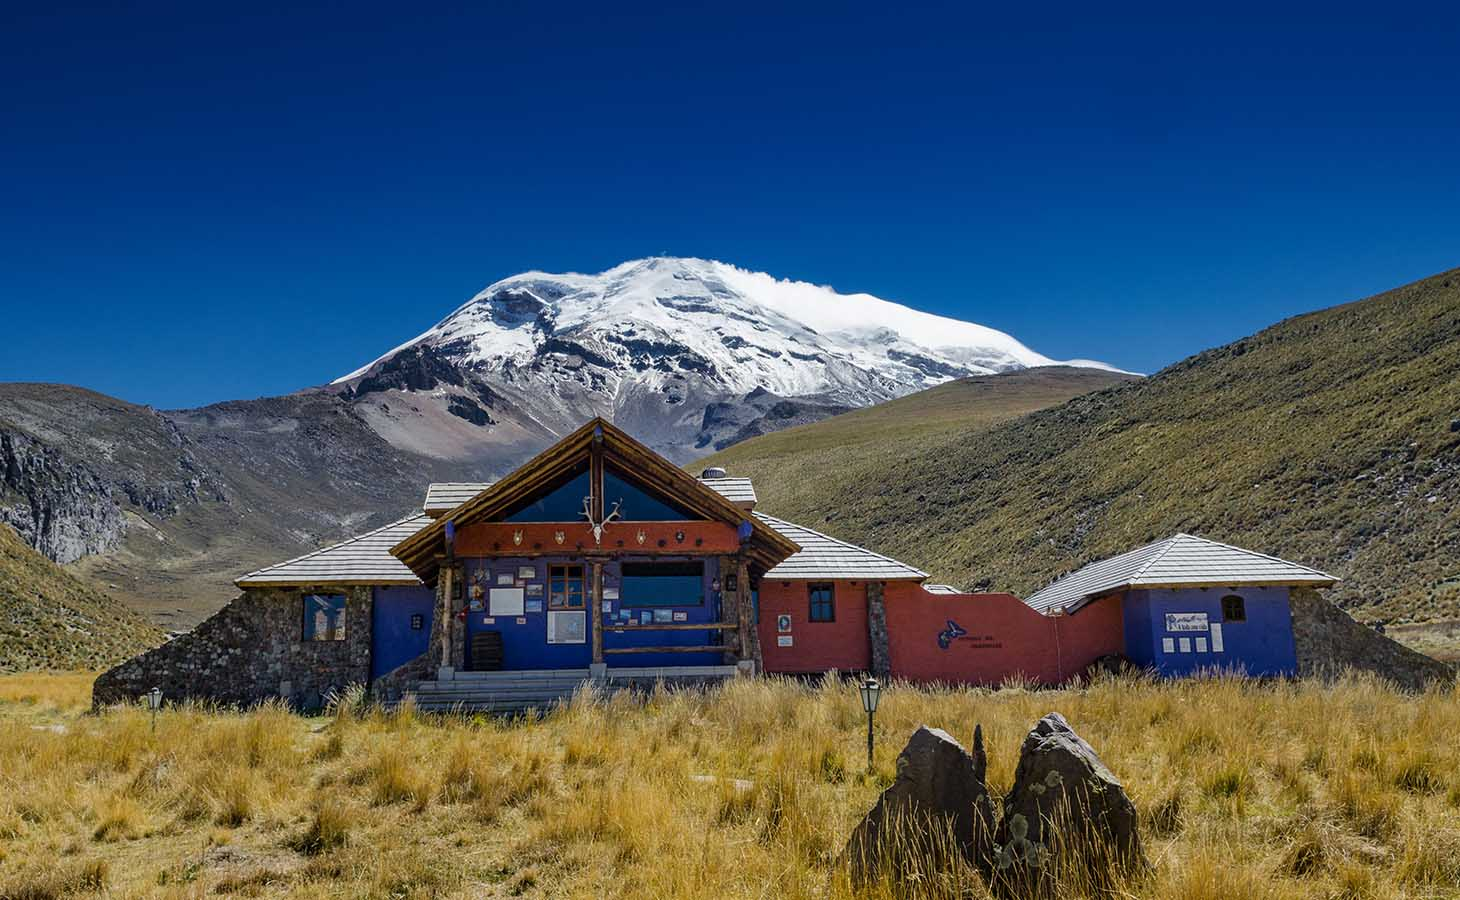 Chimborazo - Maybe you are more interested in seeing one of the largest and most impressive sights in the entire world. If that sounds like something you'd be excited to do, check out the tallest mountain in Ecuador, the Chimborazo, which is also the face of the Chimborazo Wildlife reserve.